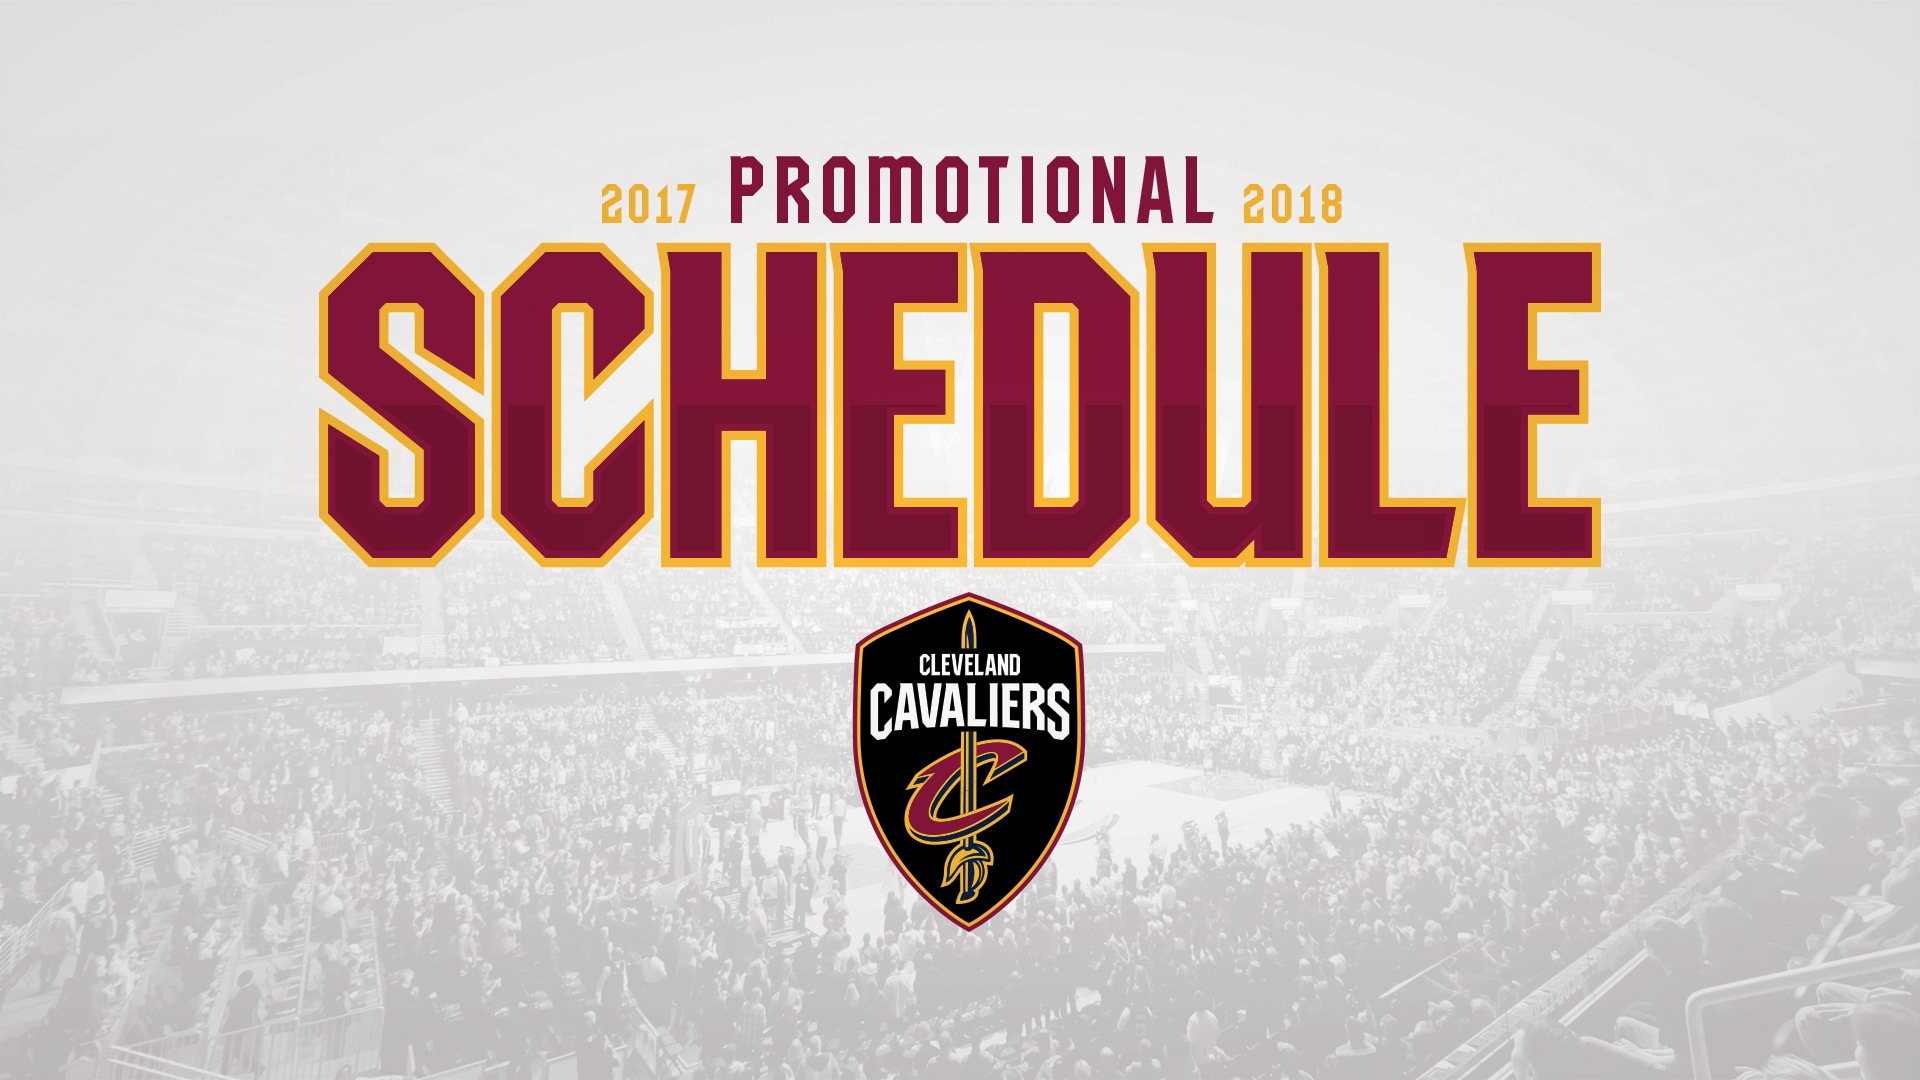 cavs announce 2017-18 promotional schedule | cleveland cavaliers